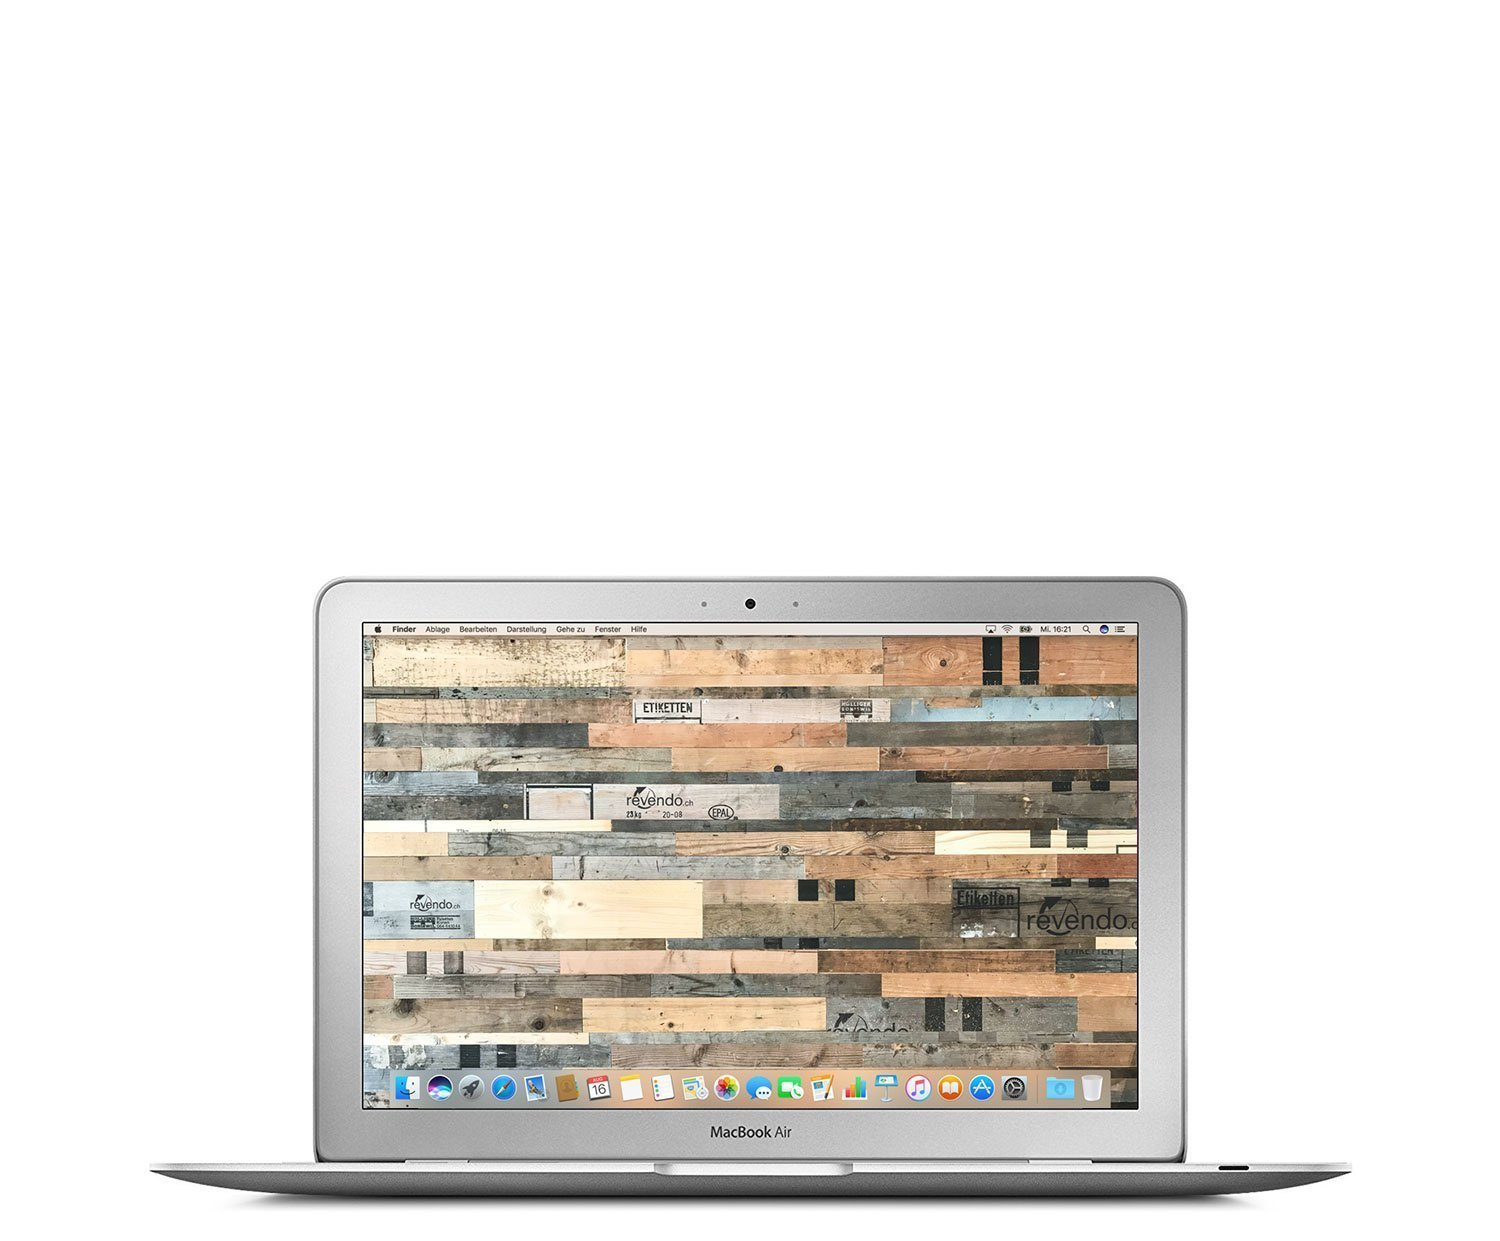 macbook air 13 1 7 ghz core i7 256 gb ssd. Black Bedroom Furniture Sets. Home Design Ideas